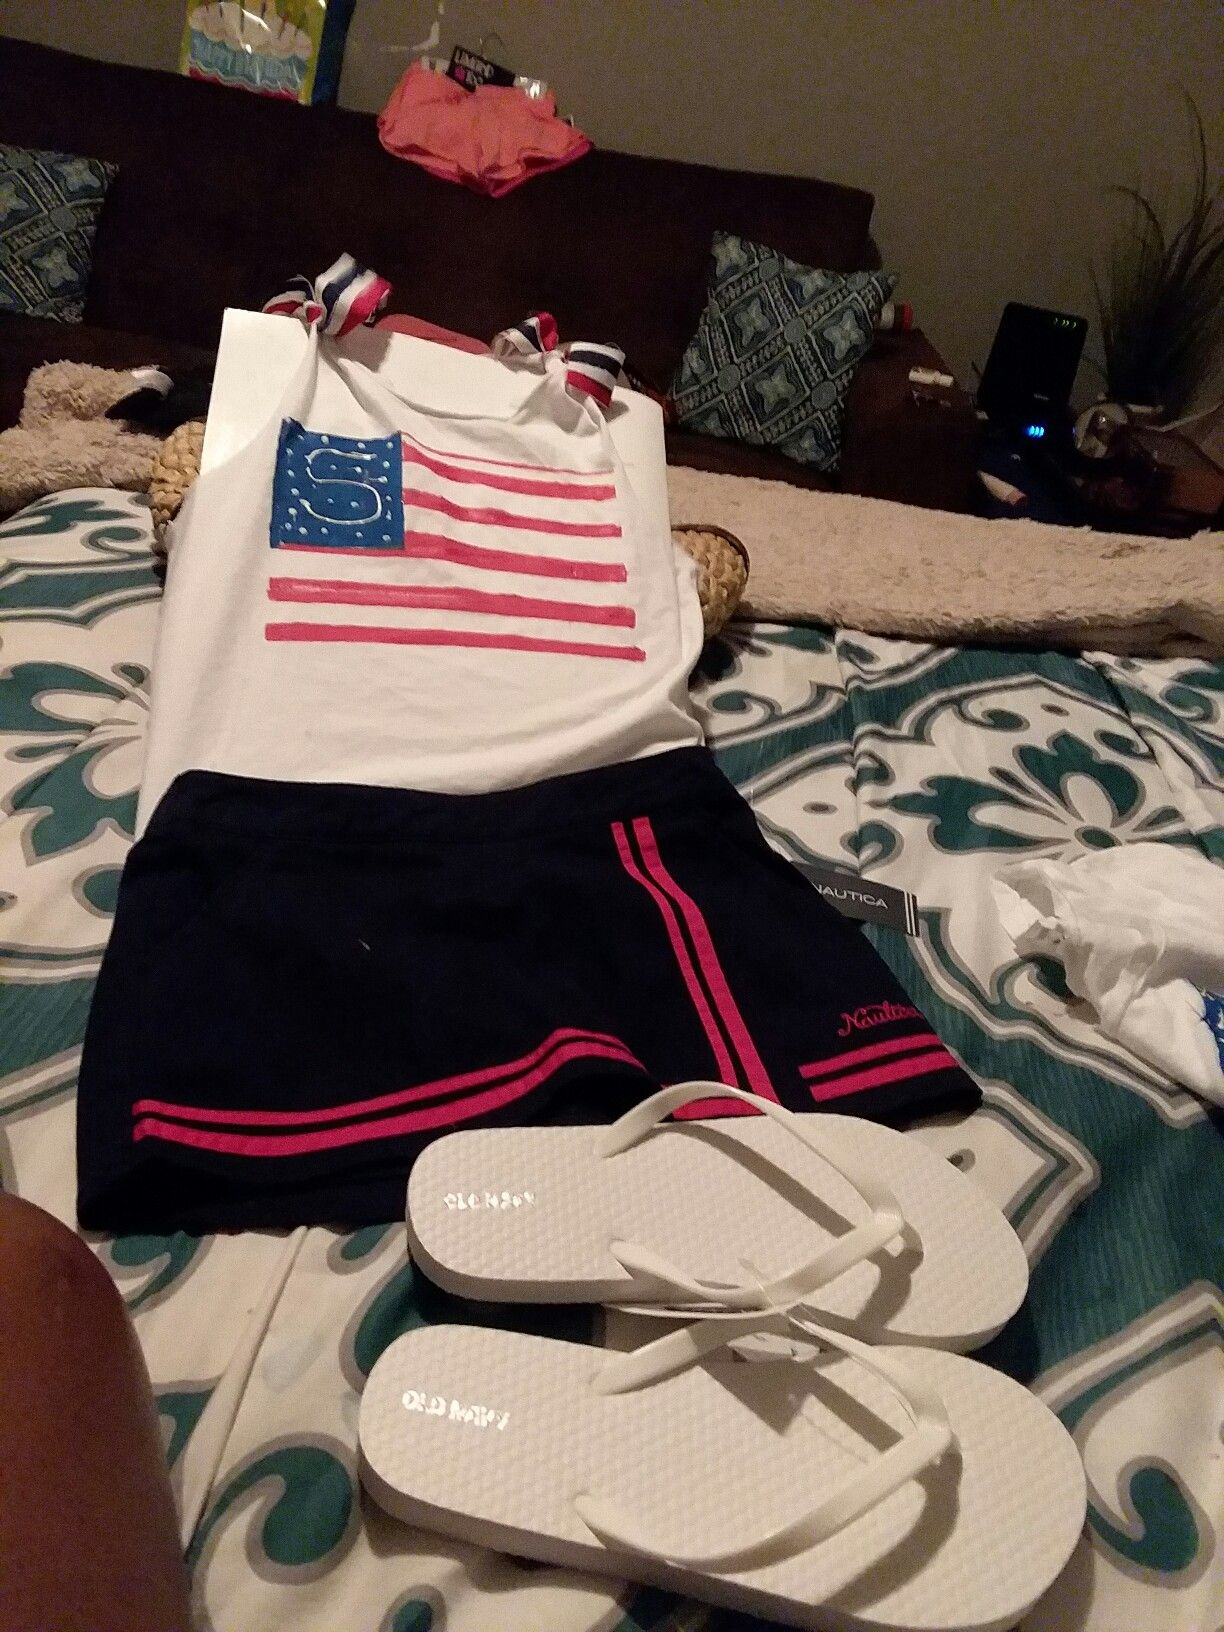 Happy 4th Of July I My Grandaughter S Outfit With Just 3 Small Tubes Of Paint From Walmart And Dollar Day Fli 4th Of July Outfits Happy 4 Of July 4th Of July